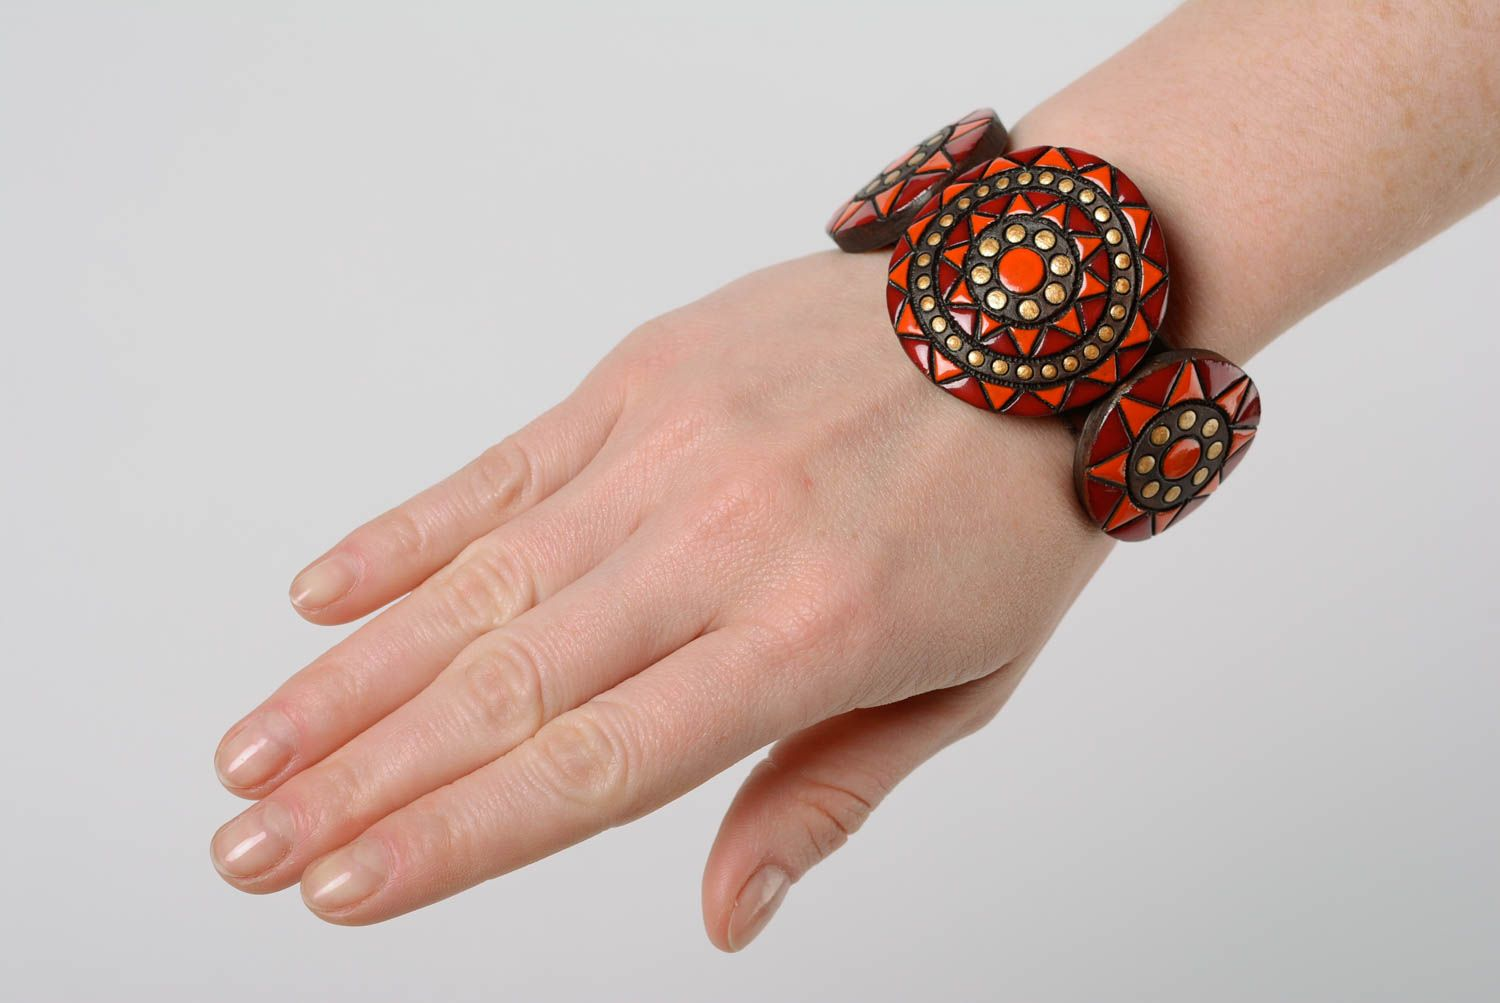 clay bracelets Handmade large clay bracelet ornamented with paints and equipped with leather strap - MADEheart.com